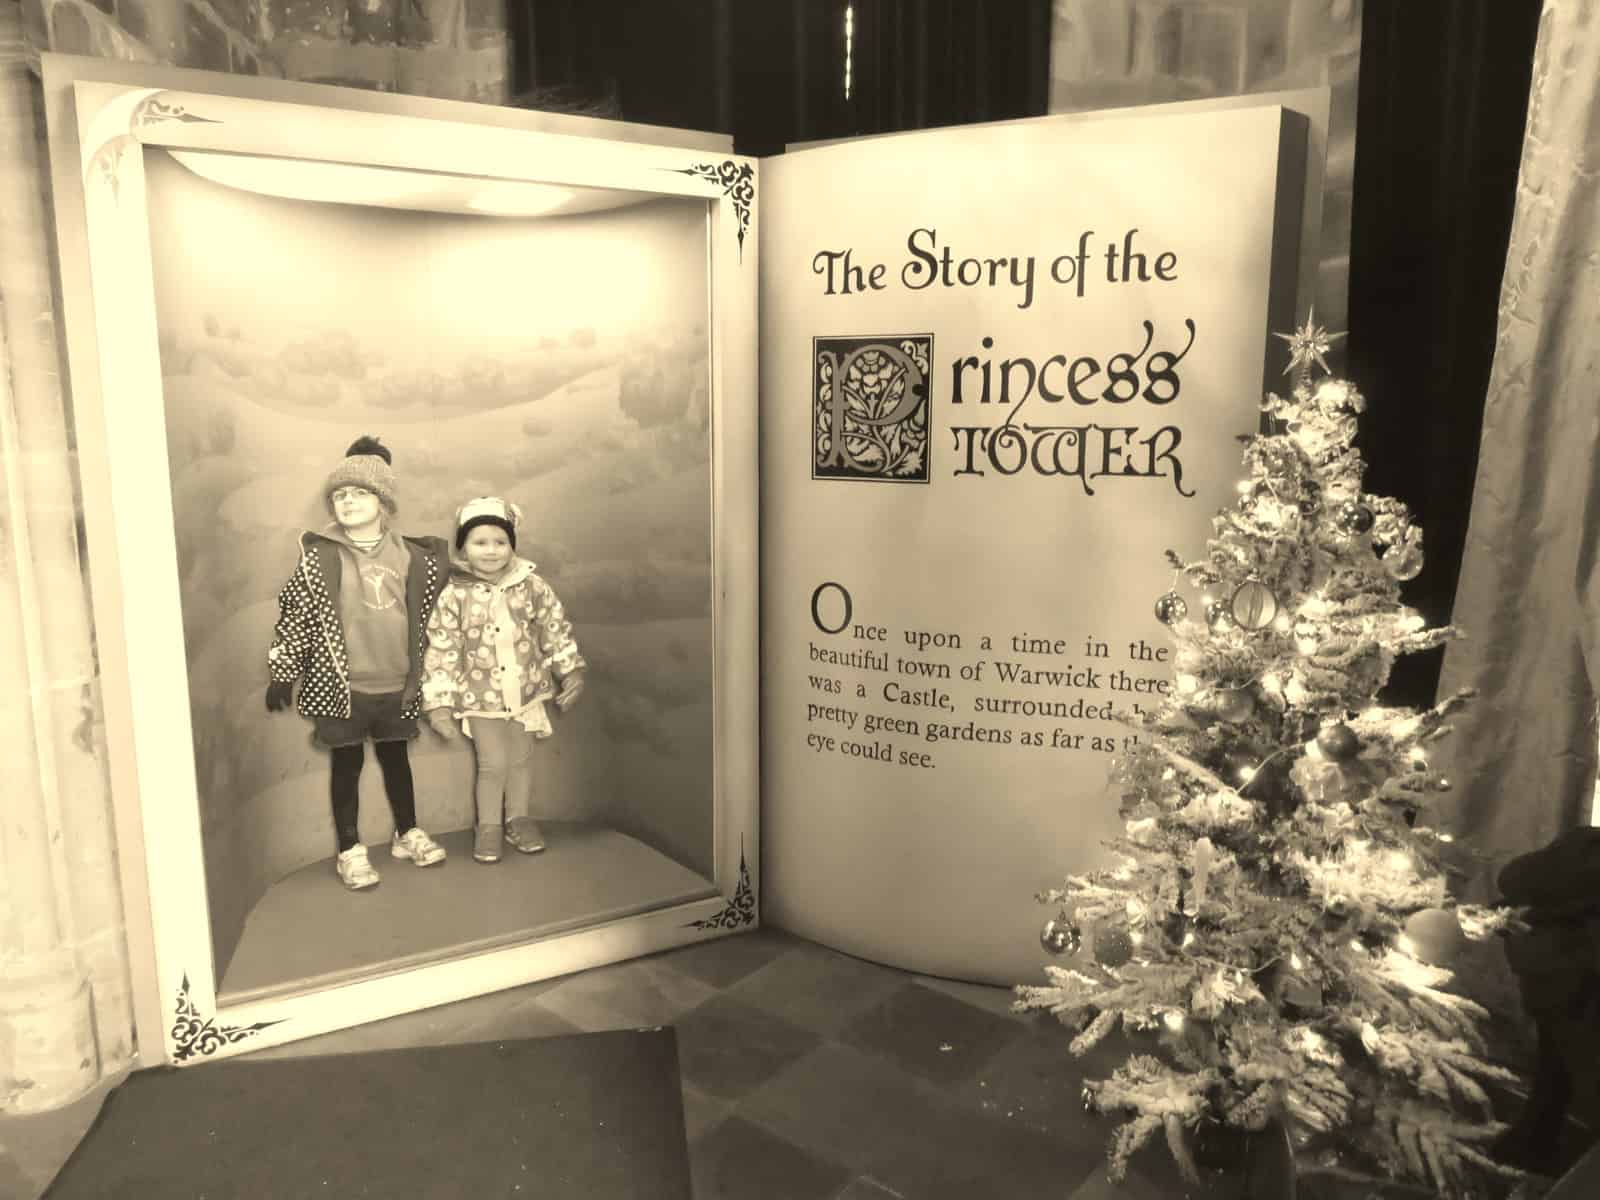 An oversized book - The story of the Princess Tower - the illustration of the book is large enough for two little girls to be standing inside it. A Christmas tree decorated with fairy lights stands in the foreground.